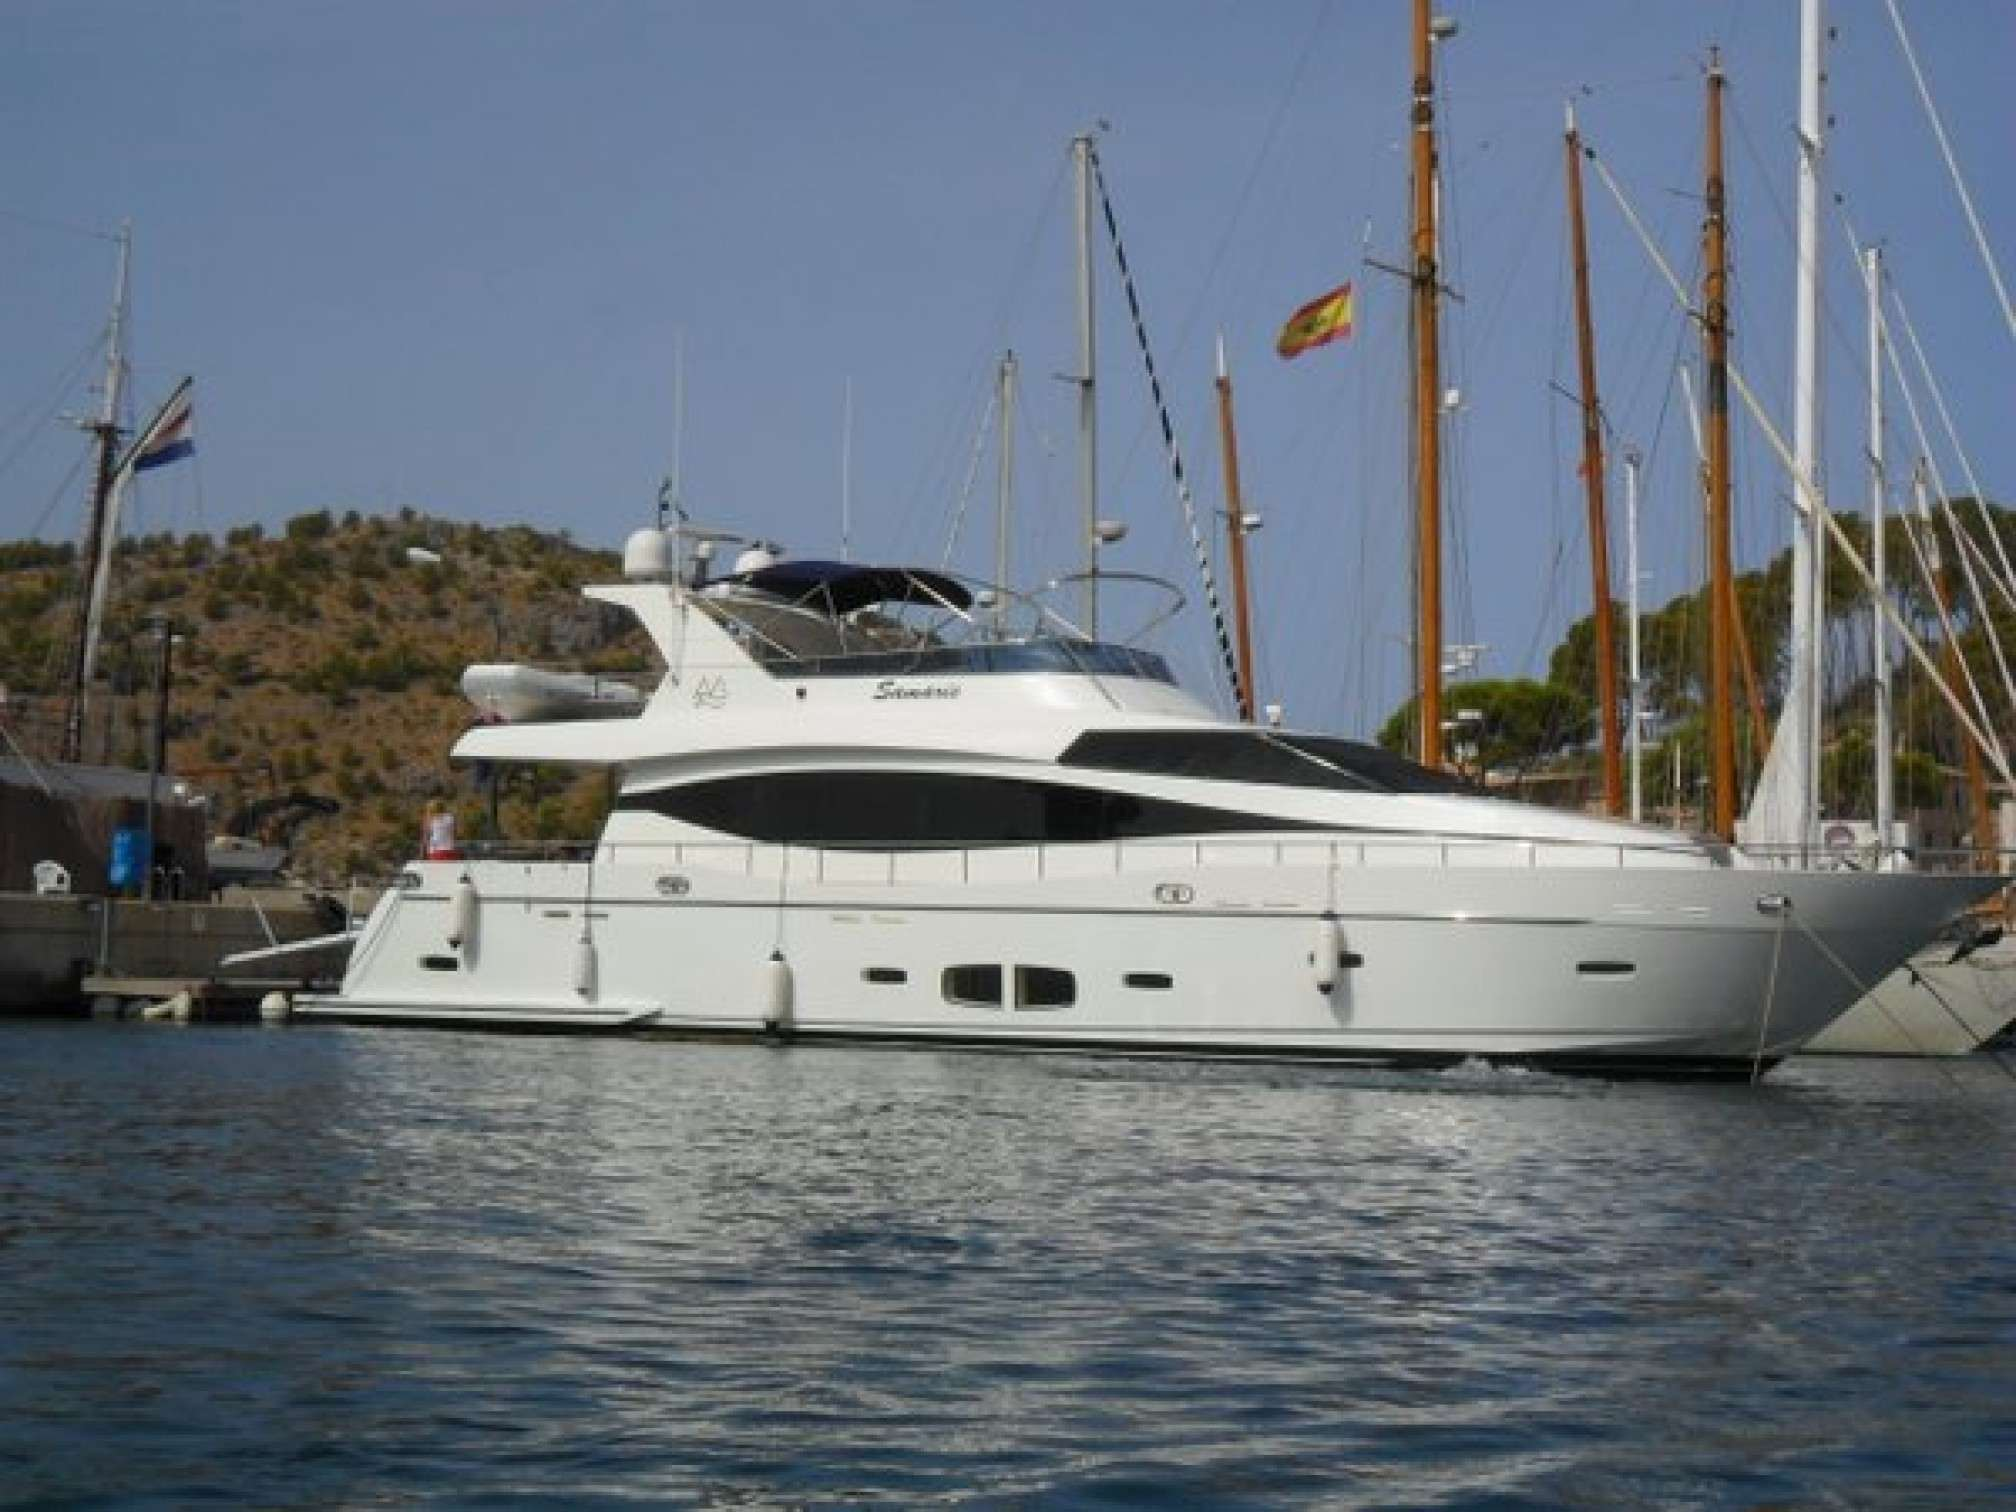 Samaric luxury yacht charter moored